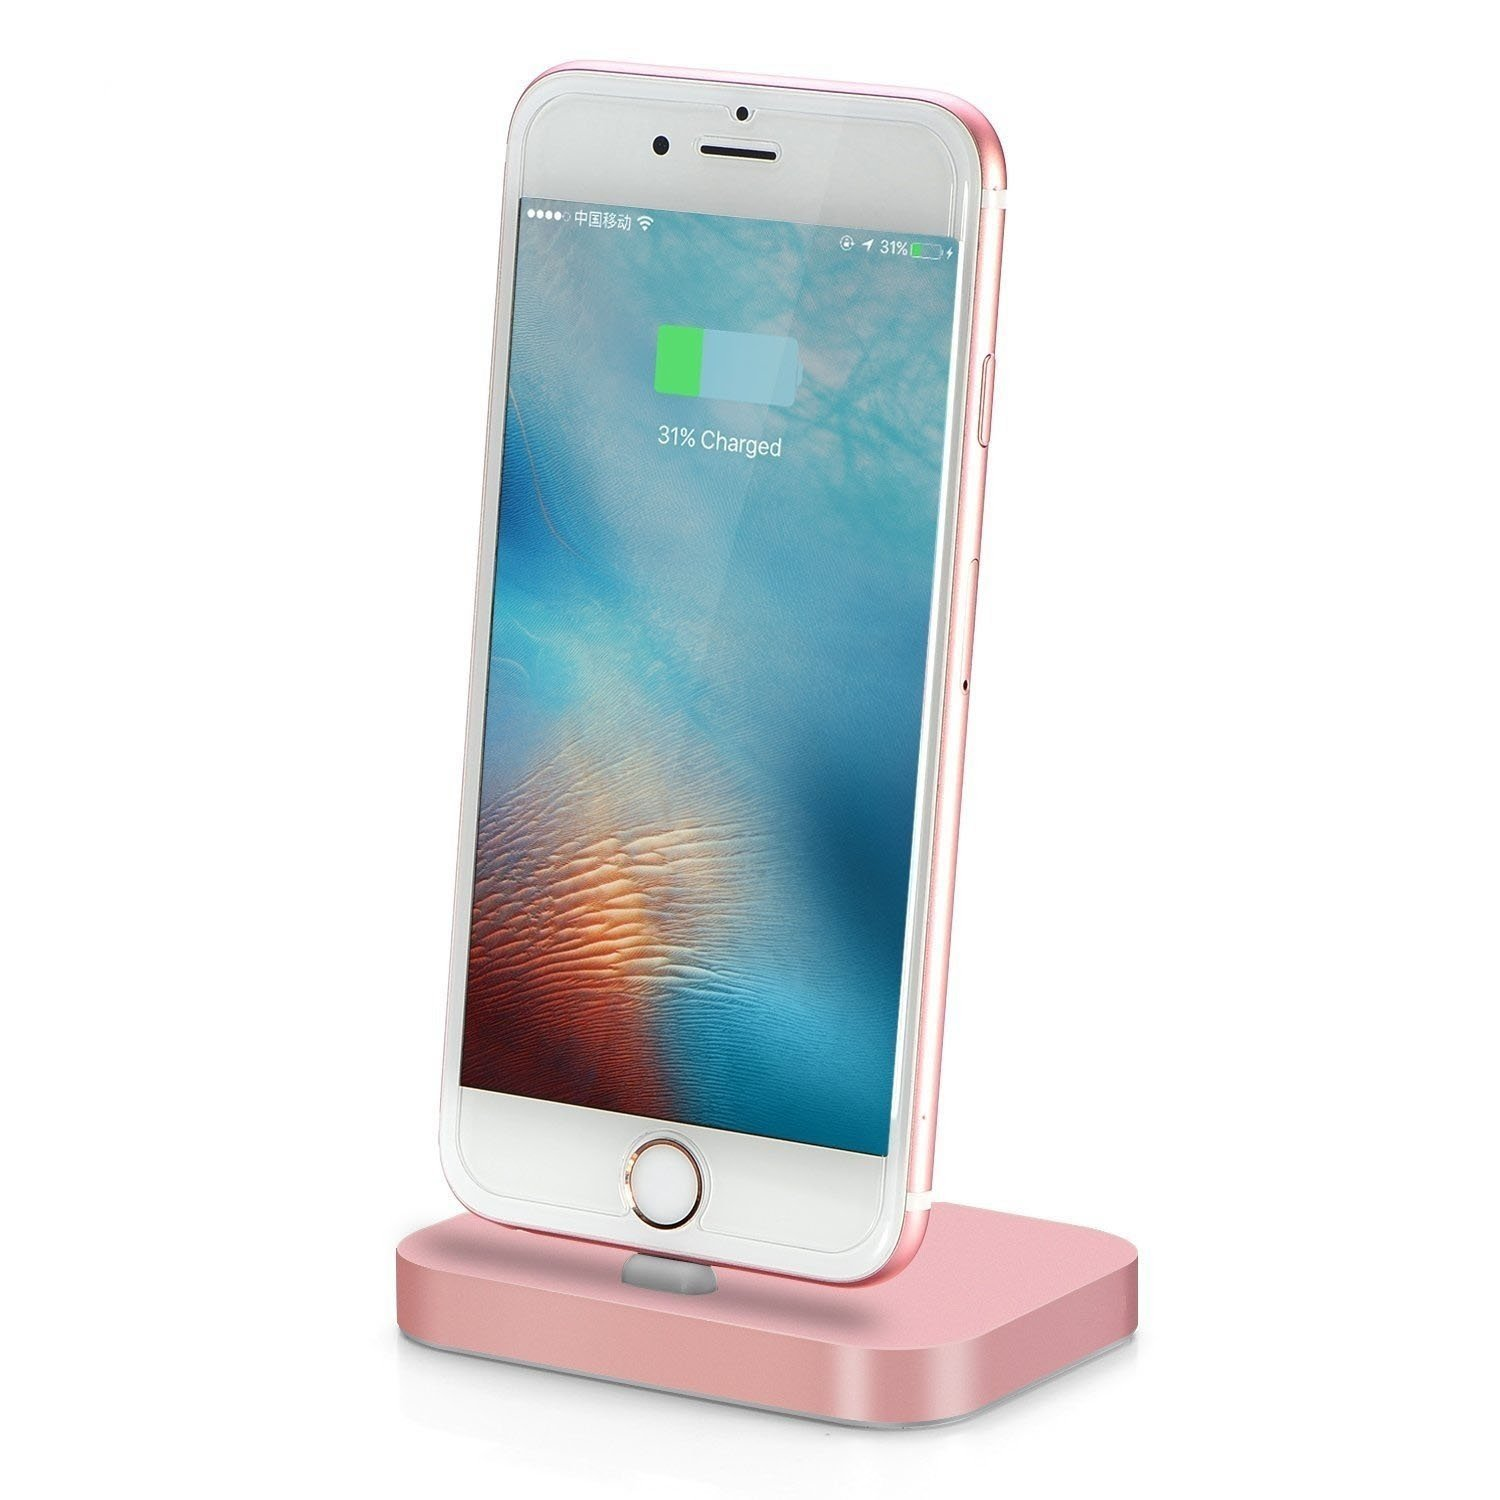 Apple iPhone Lightning Charging Stand Dock Station for iPhone 7/7 Plus/SE/5/c/s/6/6s, 6/6s Plus/iPod Nano 7th Gen/iPod Touch 5,6th Gen, Aluminum Charger Cradle for Charge and Sync Data (Rose Gold)